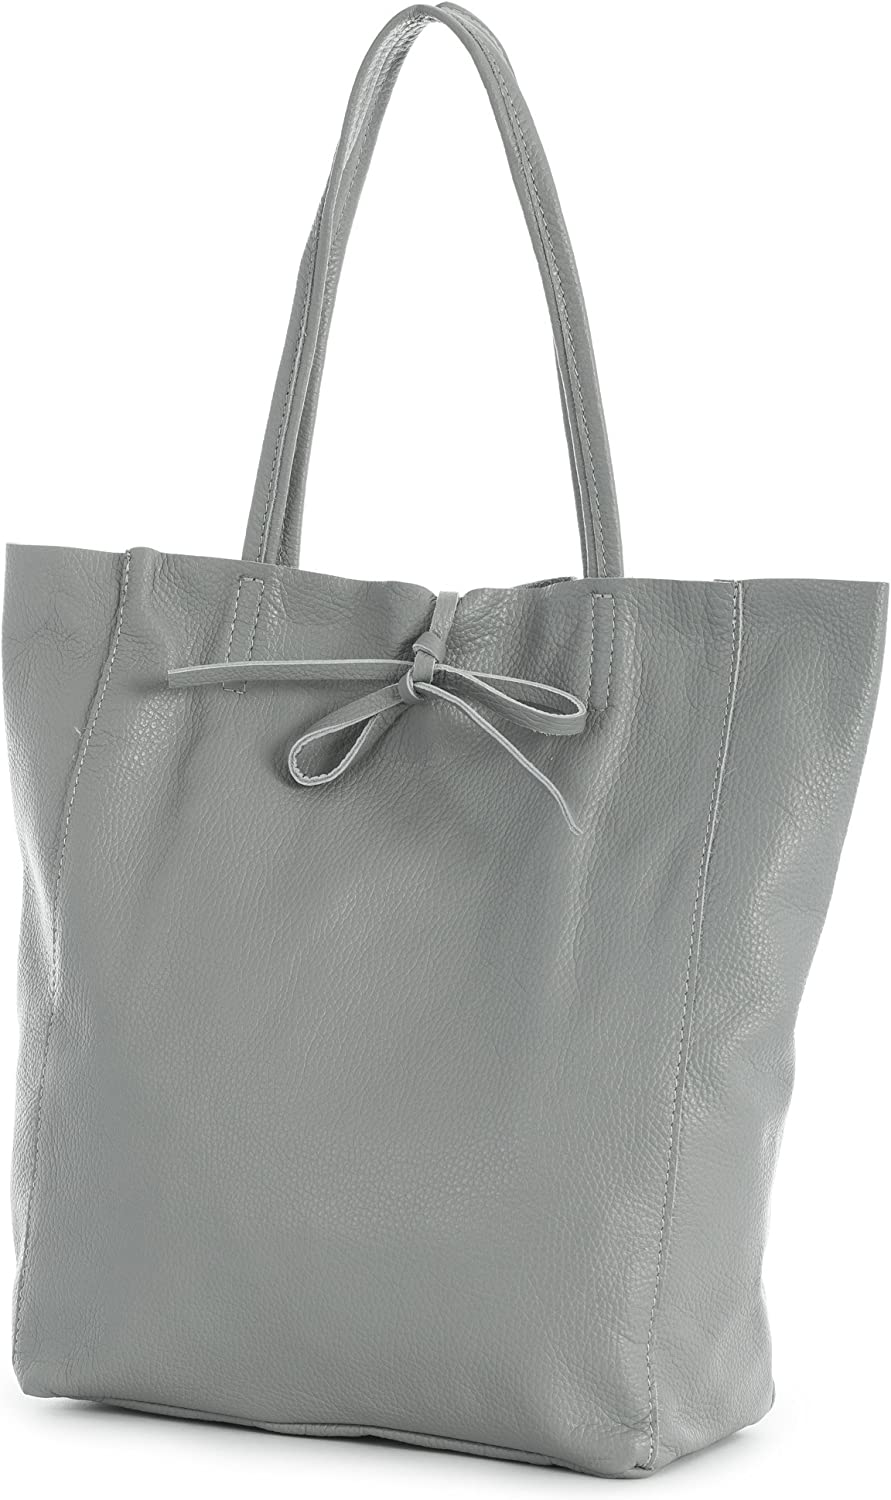 ASTRID LIATALIA Genuine Italian Soft Leather Leightweight Large Hobo Tote Shopper Shoulder Handbag